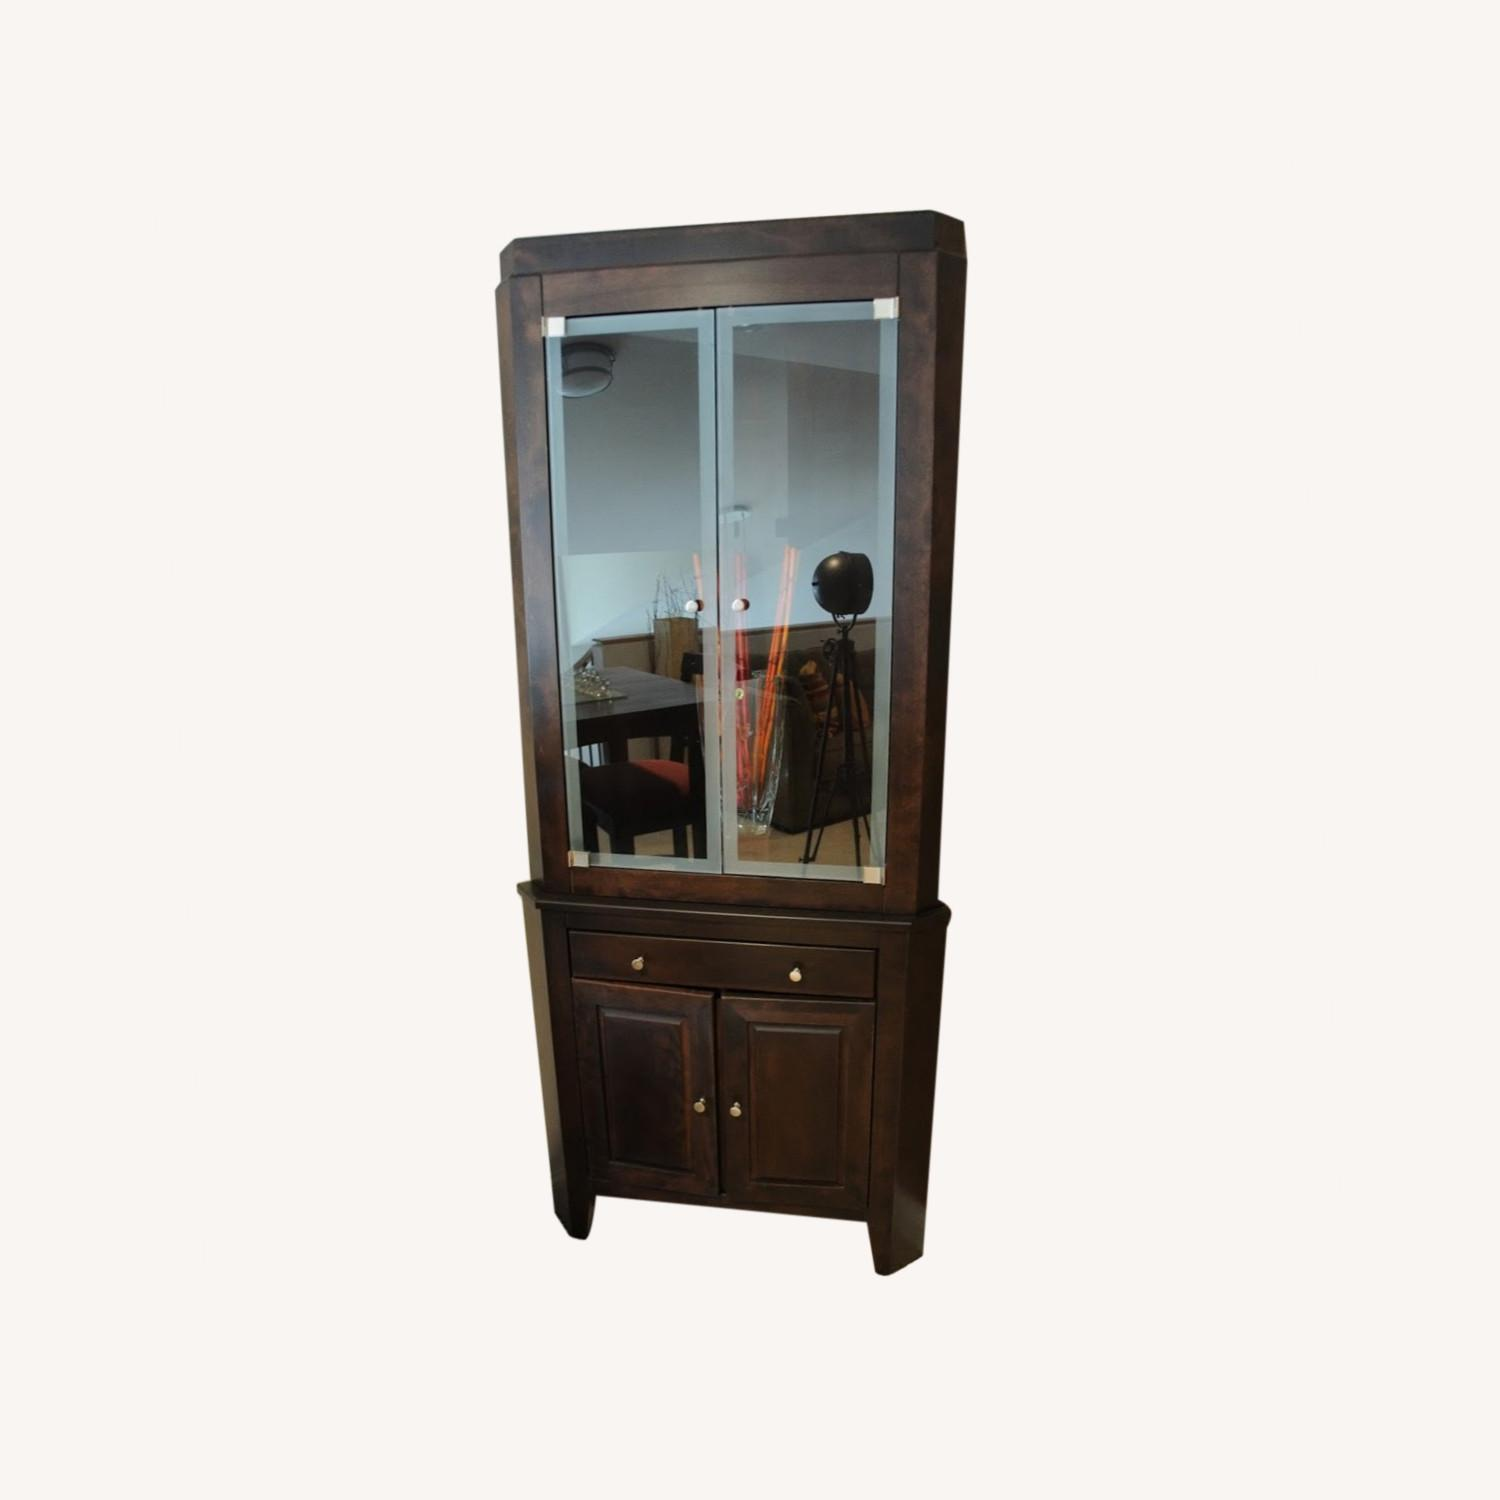 Canadel Corner Curio Cabinet with Light - image-0